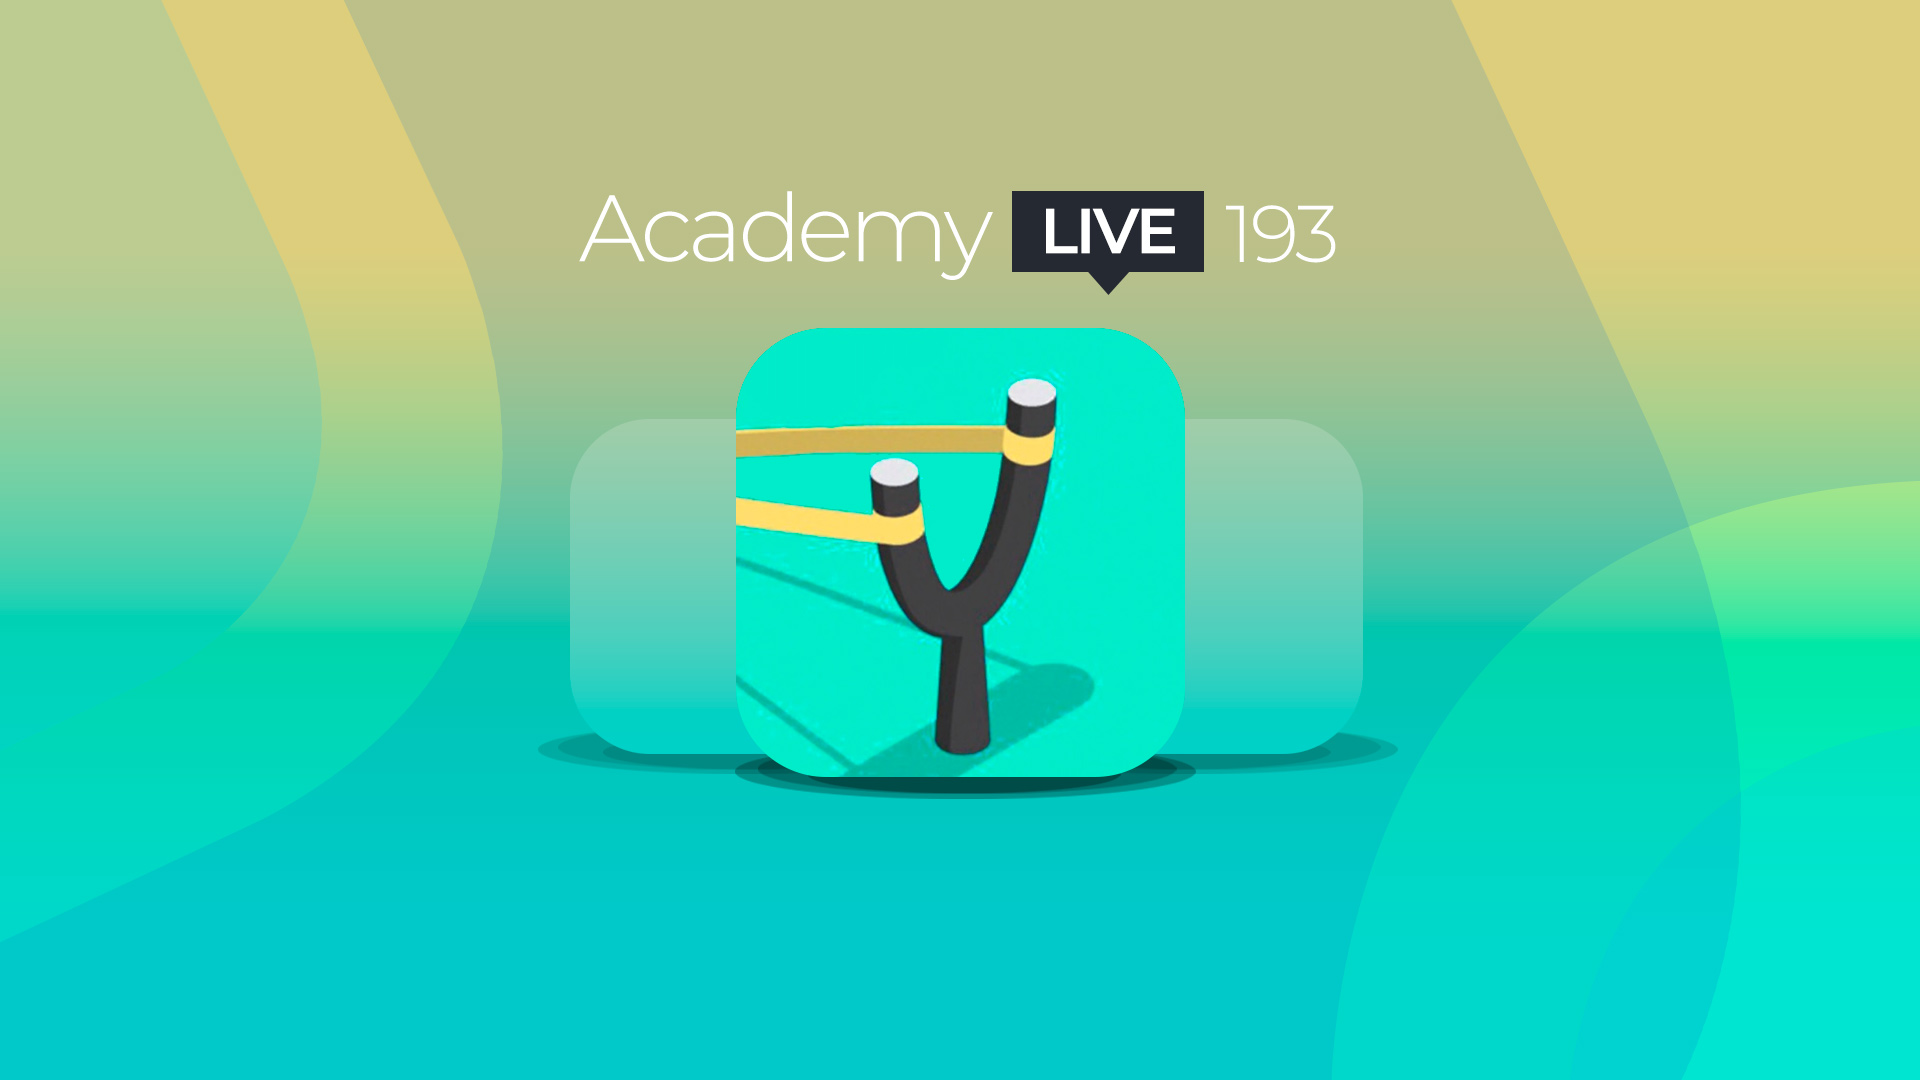 Academy Live 193: Signing a Voodoo Deal with King Faisal